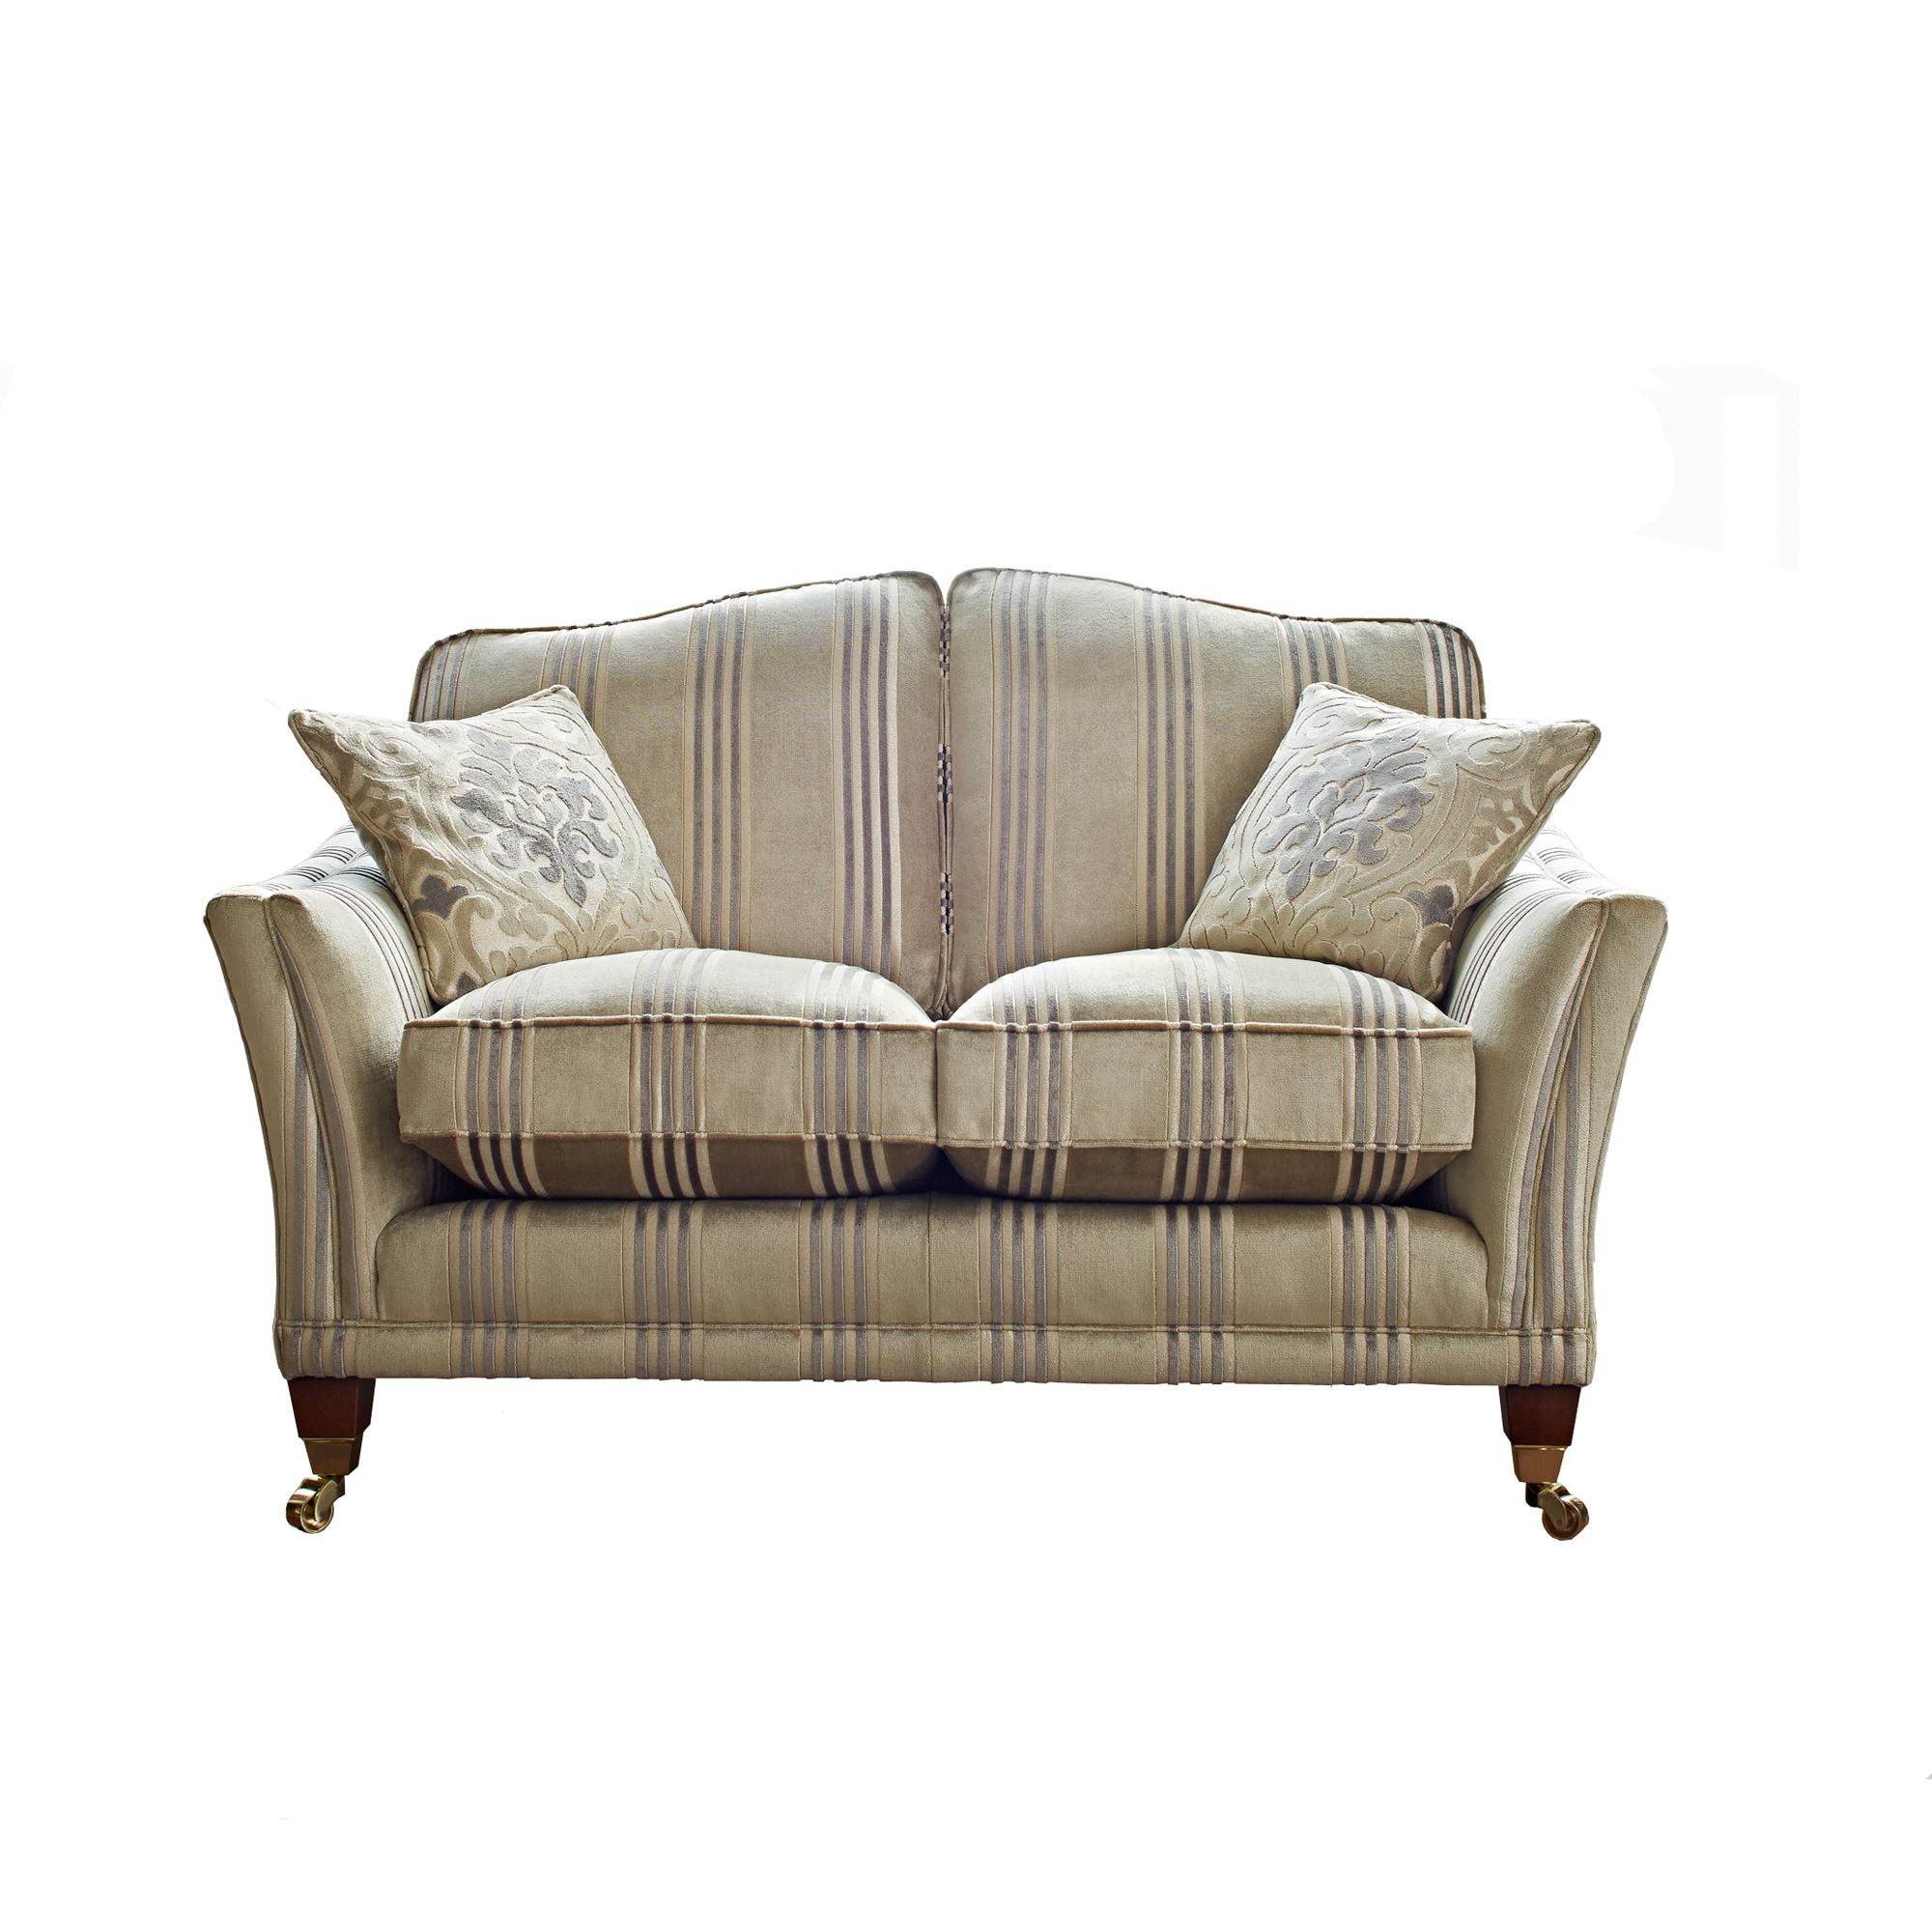 Most Recently Released Parker Knoll Harrow 2 Seater Sofa – Parker Knoll – Cookes Furniture Regarding Parker Sofa Chairs (View 9 of 20)